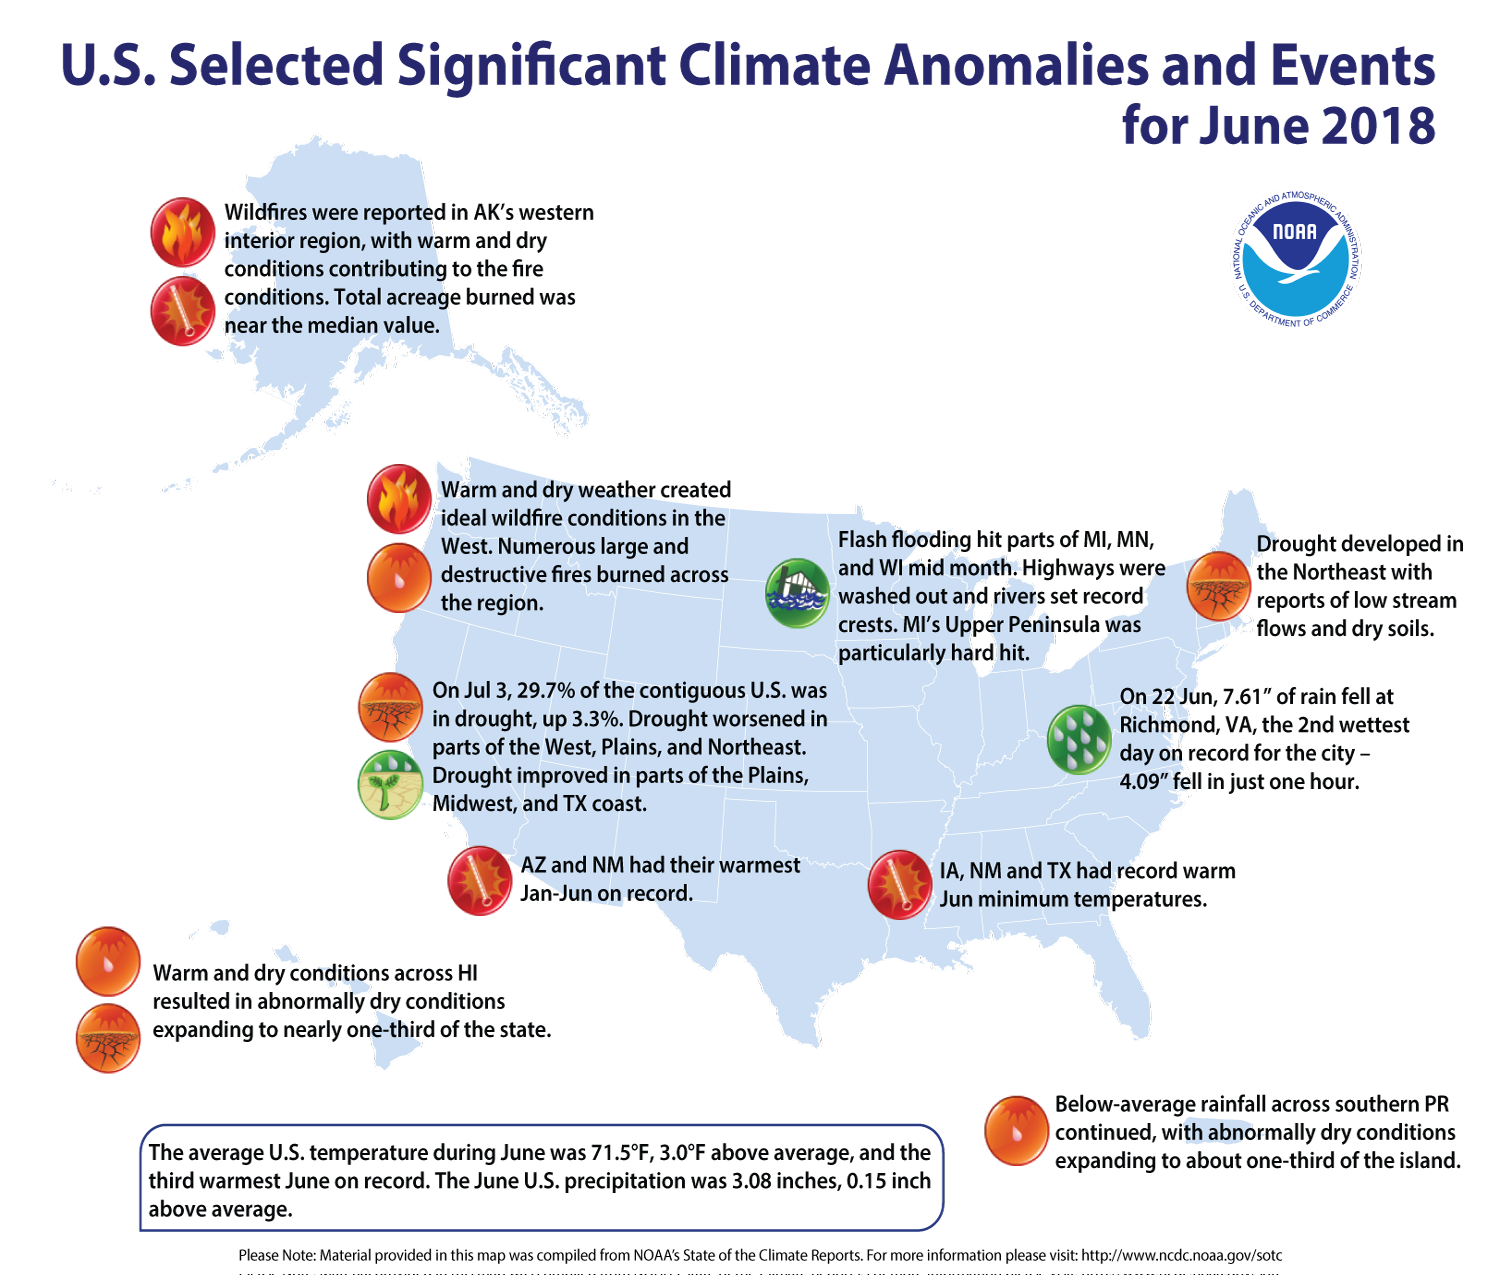 June Extreme Weather/Climate Events